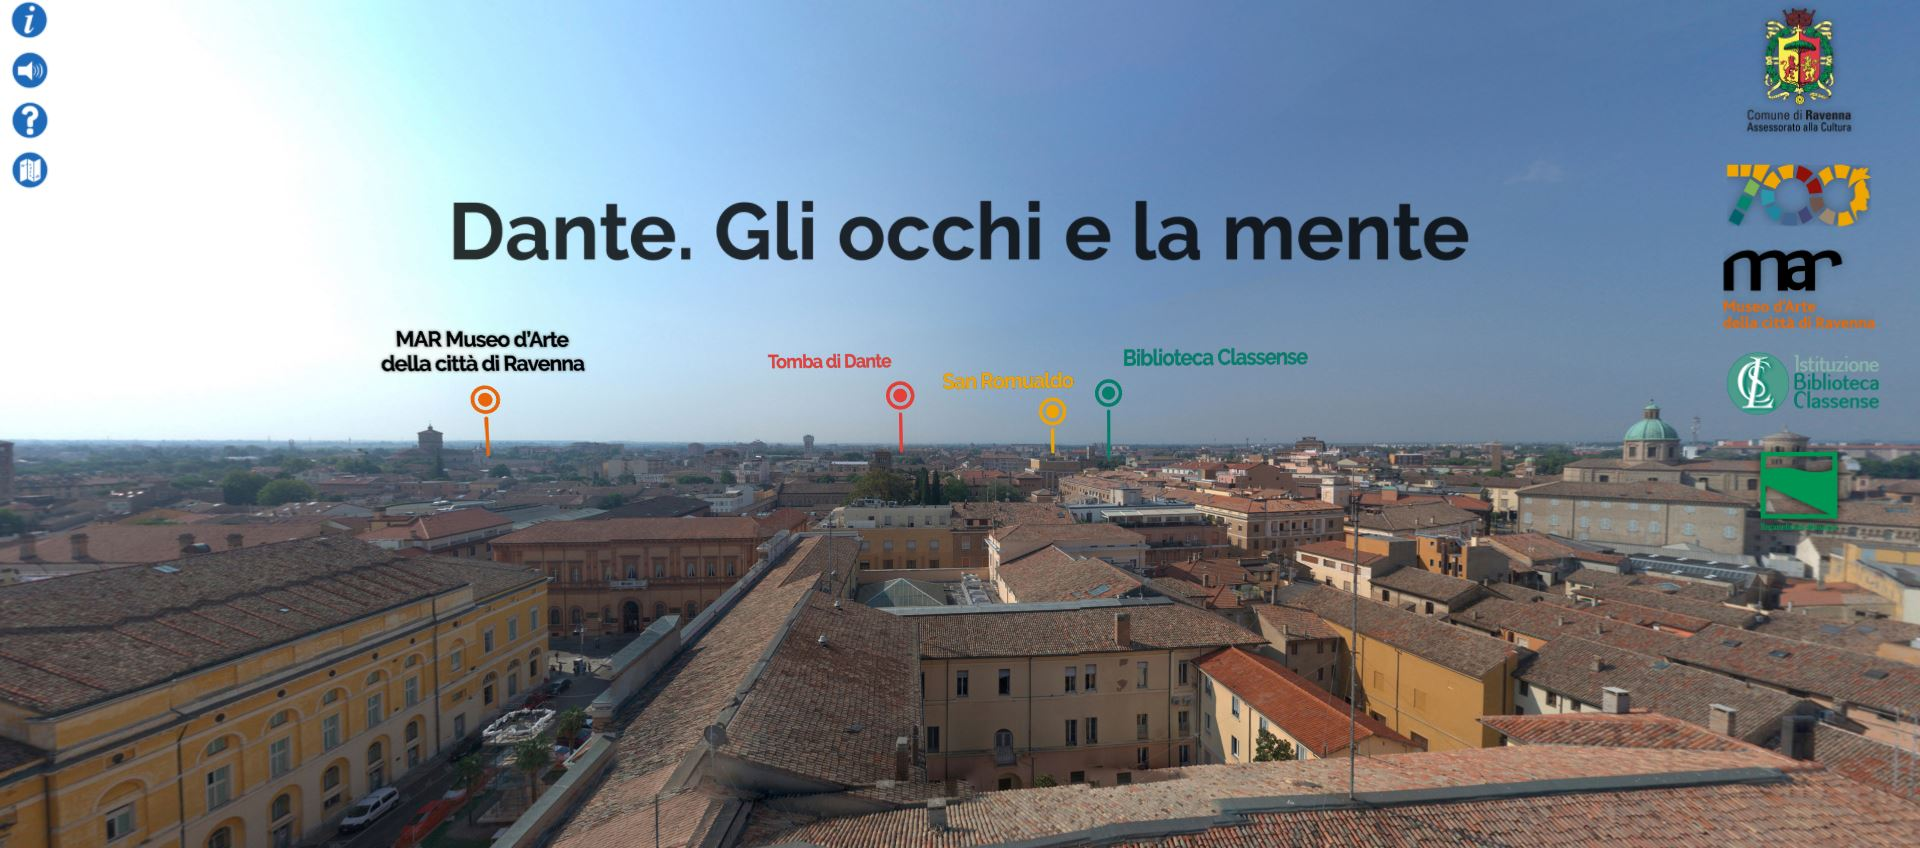 Dante a Ravenna, luoghi e versi in un virtual tour